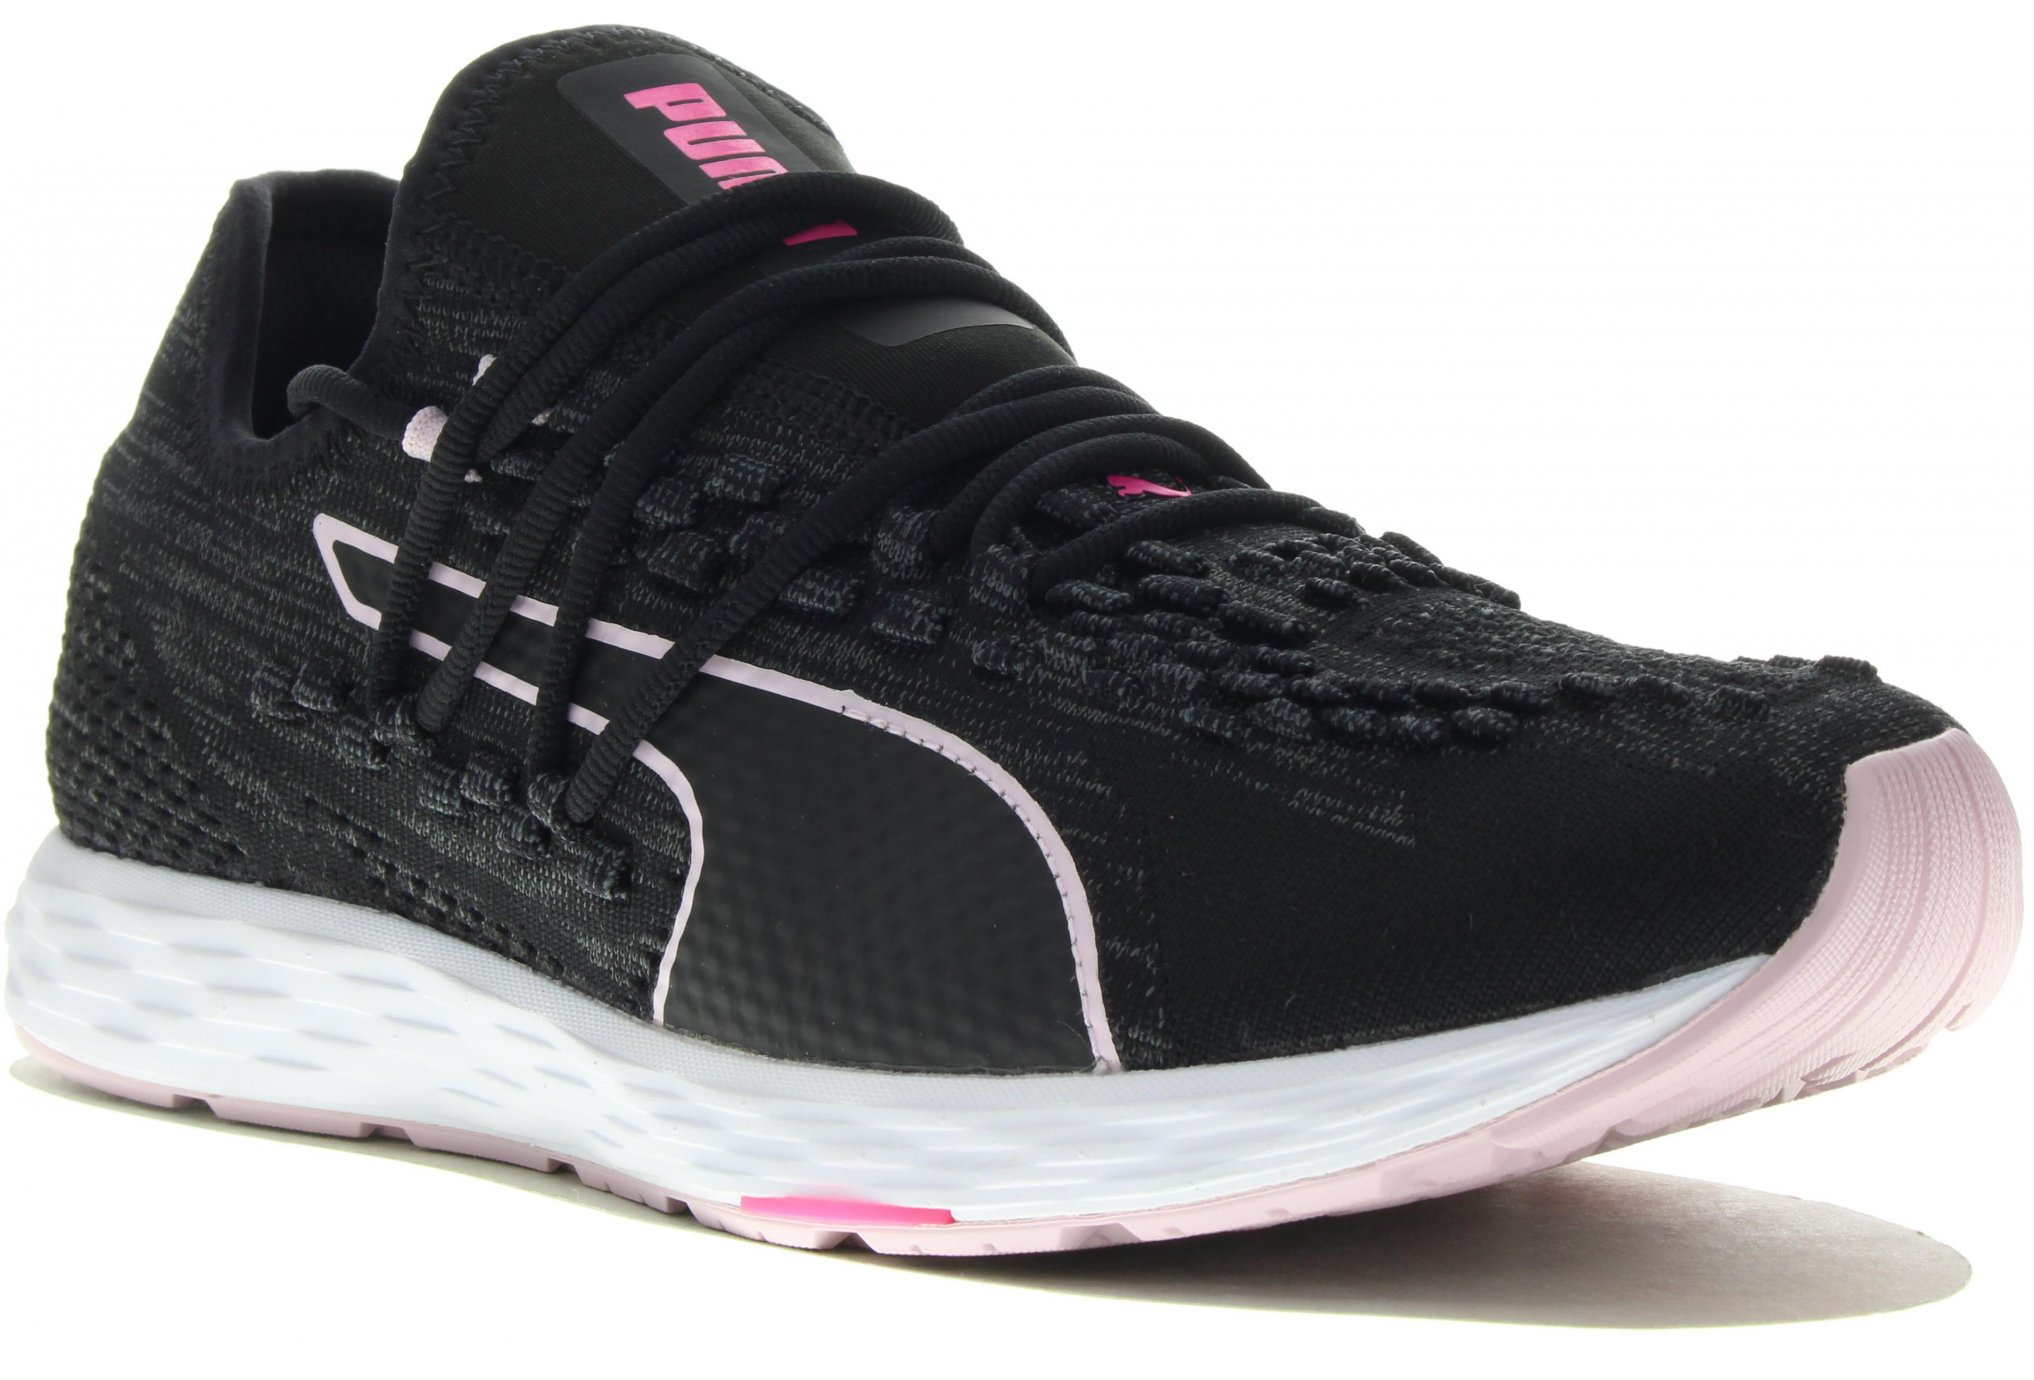 Puma Speed 300 Racer Fusefit W Chaussures running femme